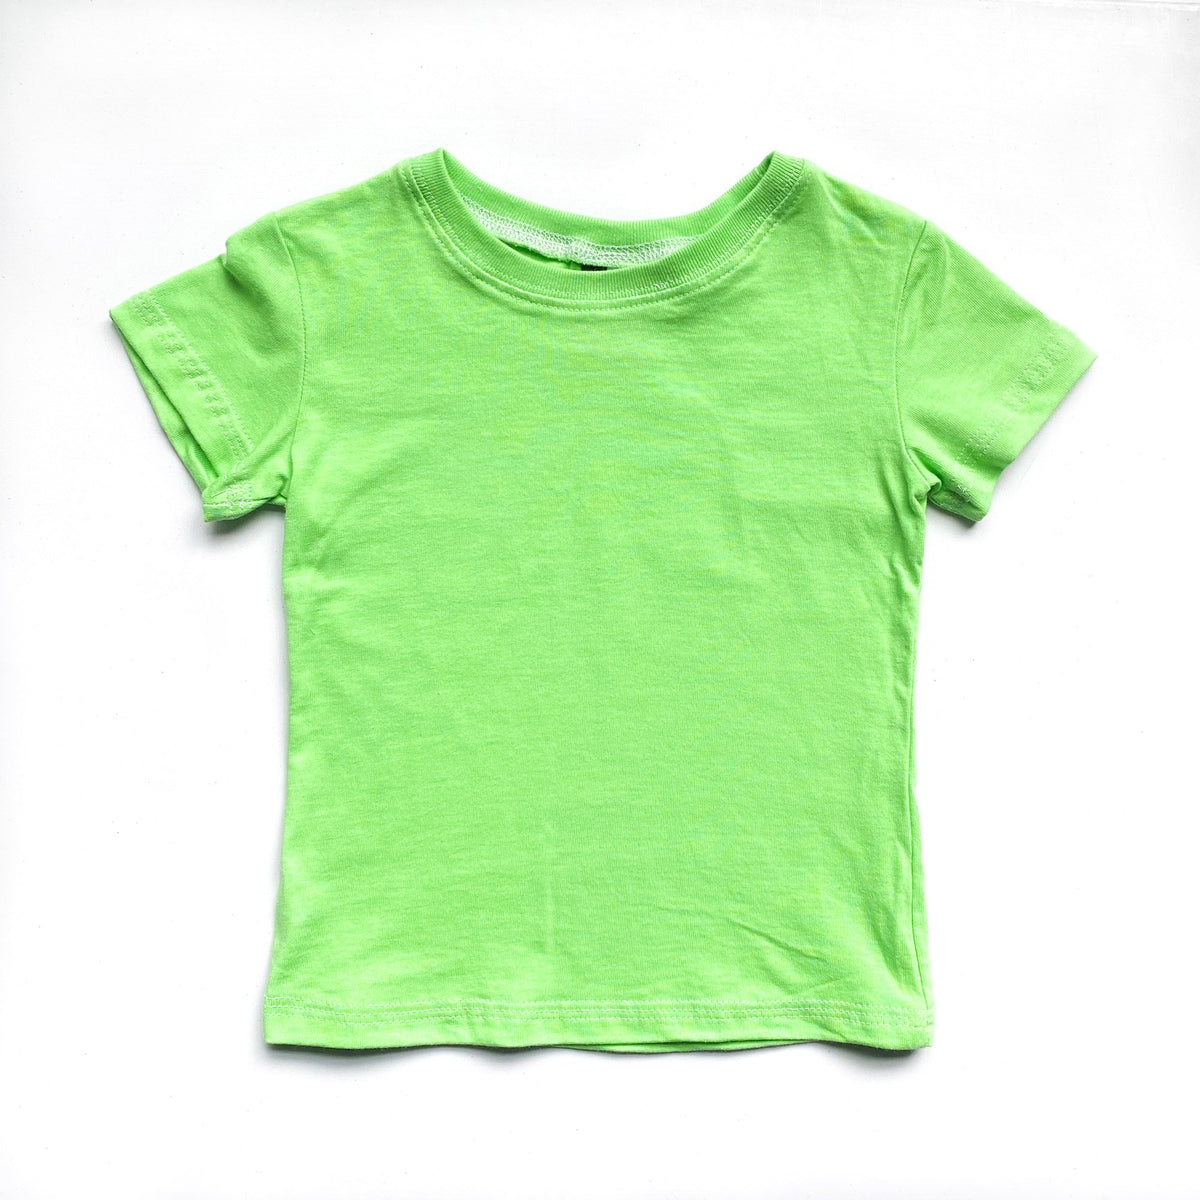 Kids' Classic color:Bright Green Combed Cotton Kids' T-shirts New T-shirts